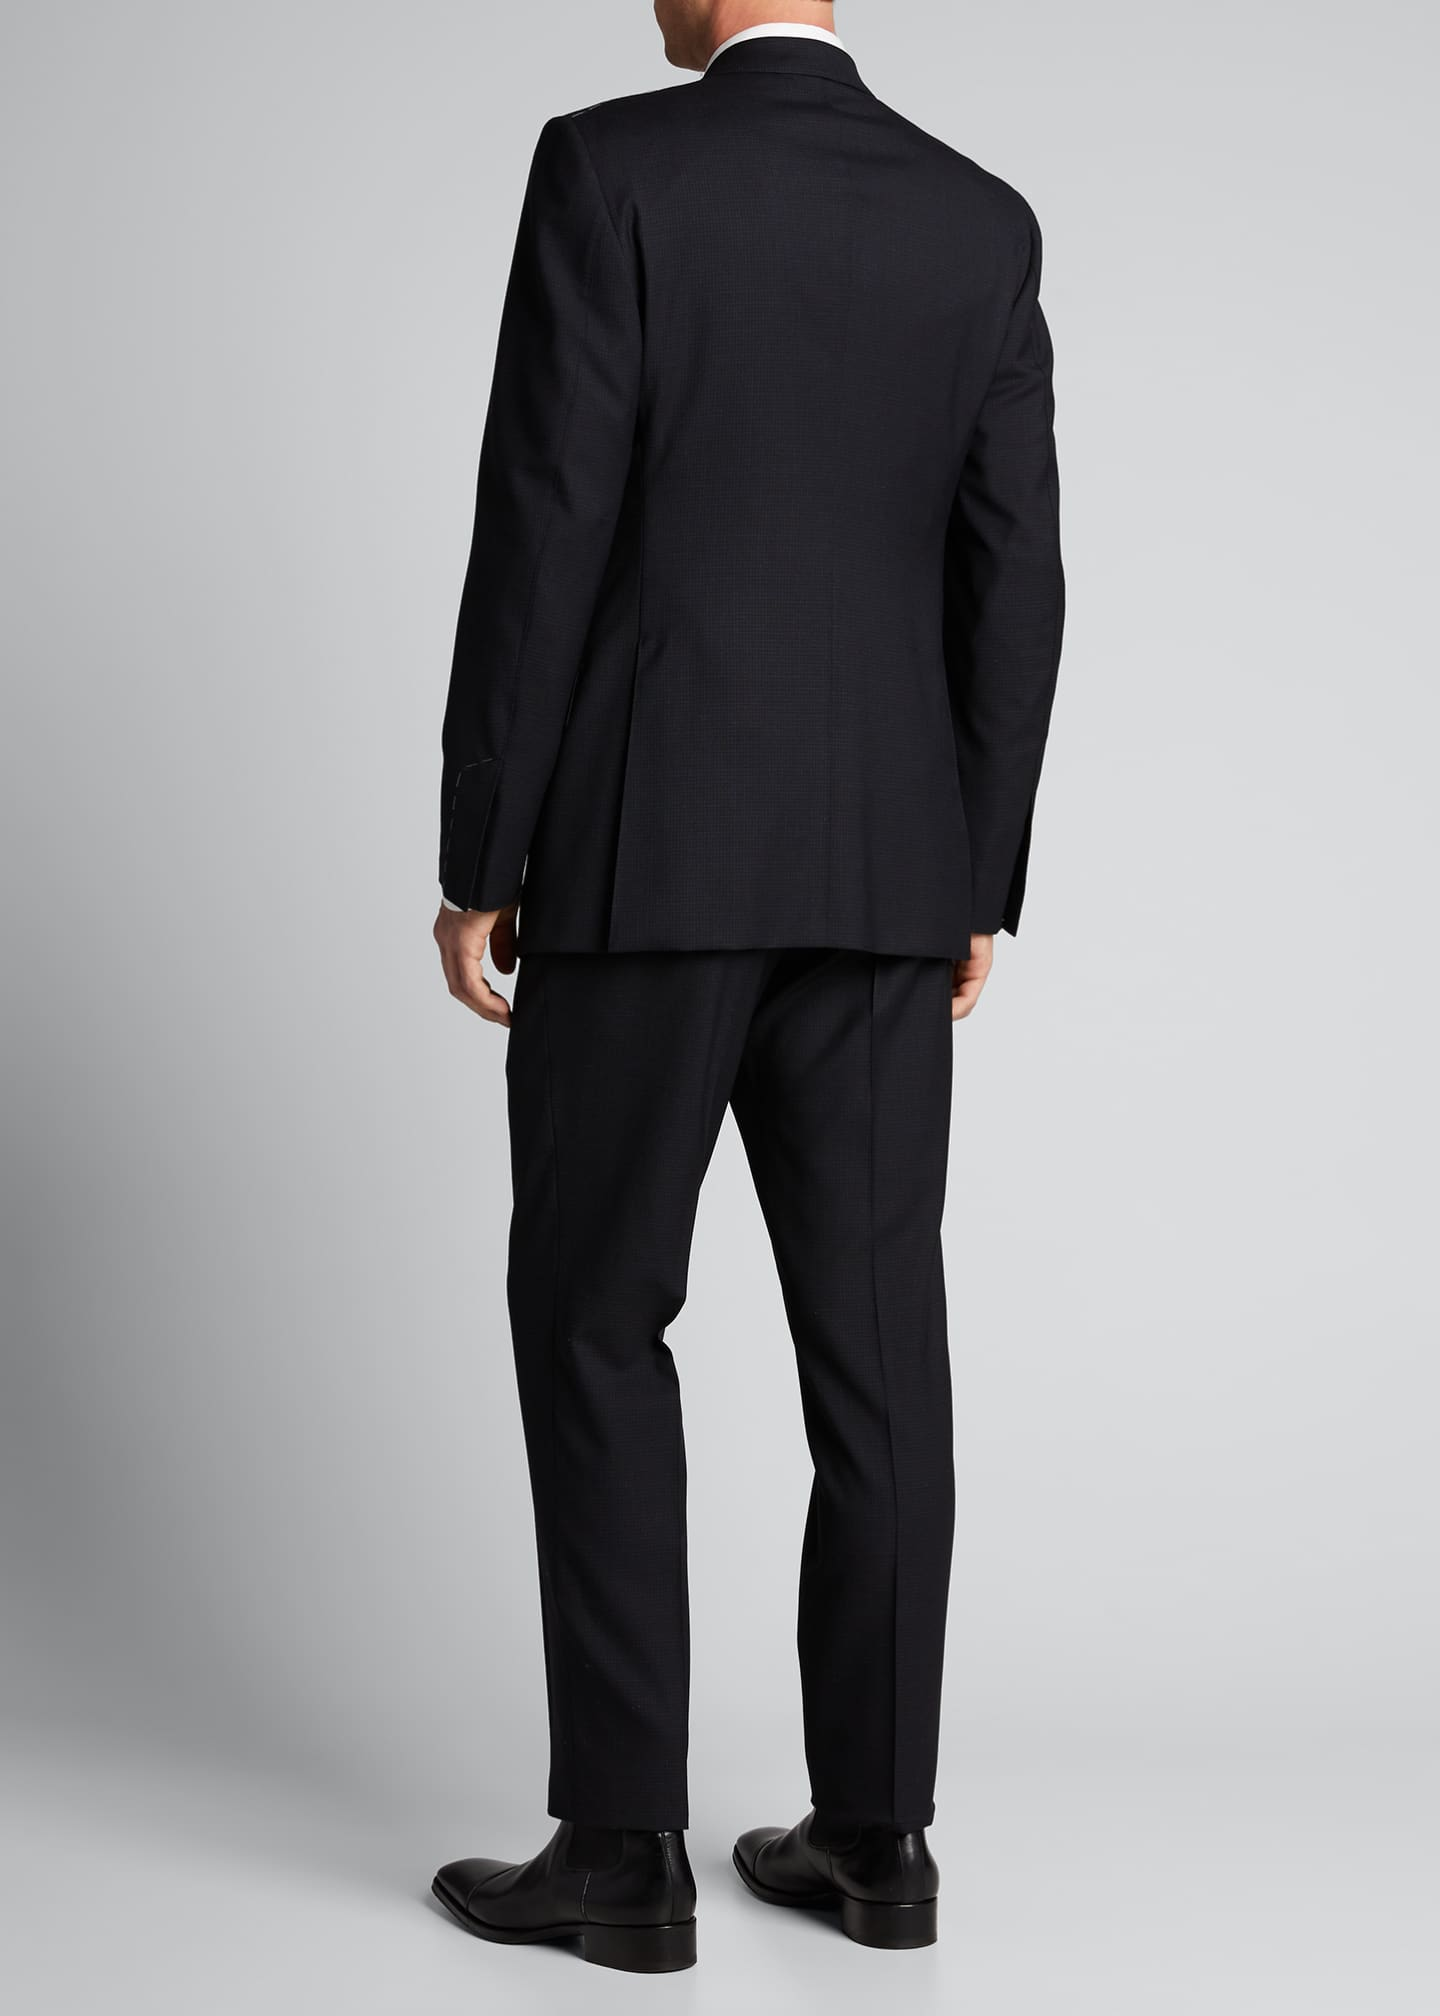 Image 2 of 5: Men's O'Connor Base Micro-Check Two-Piece Suit